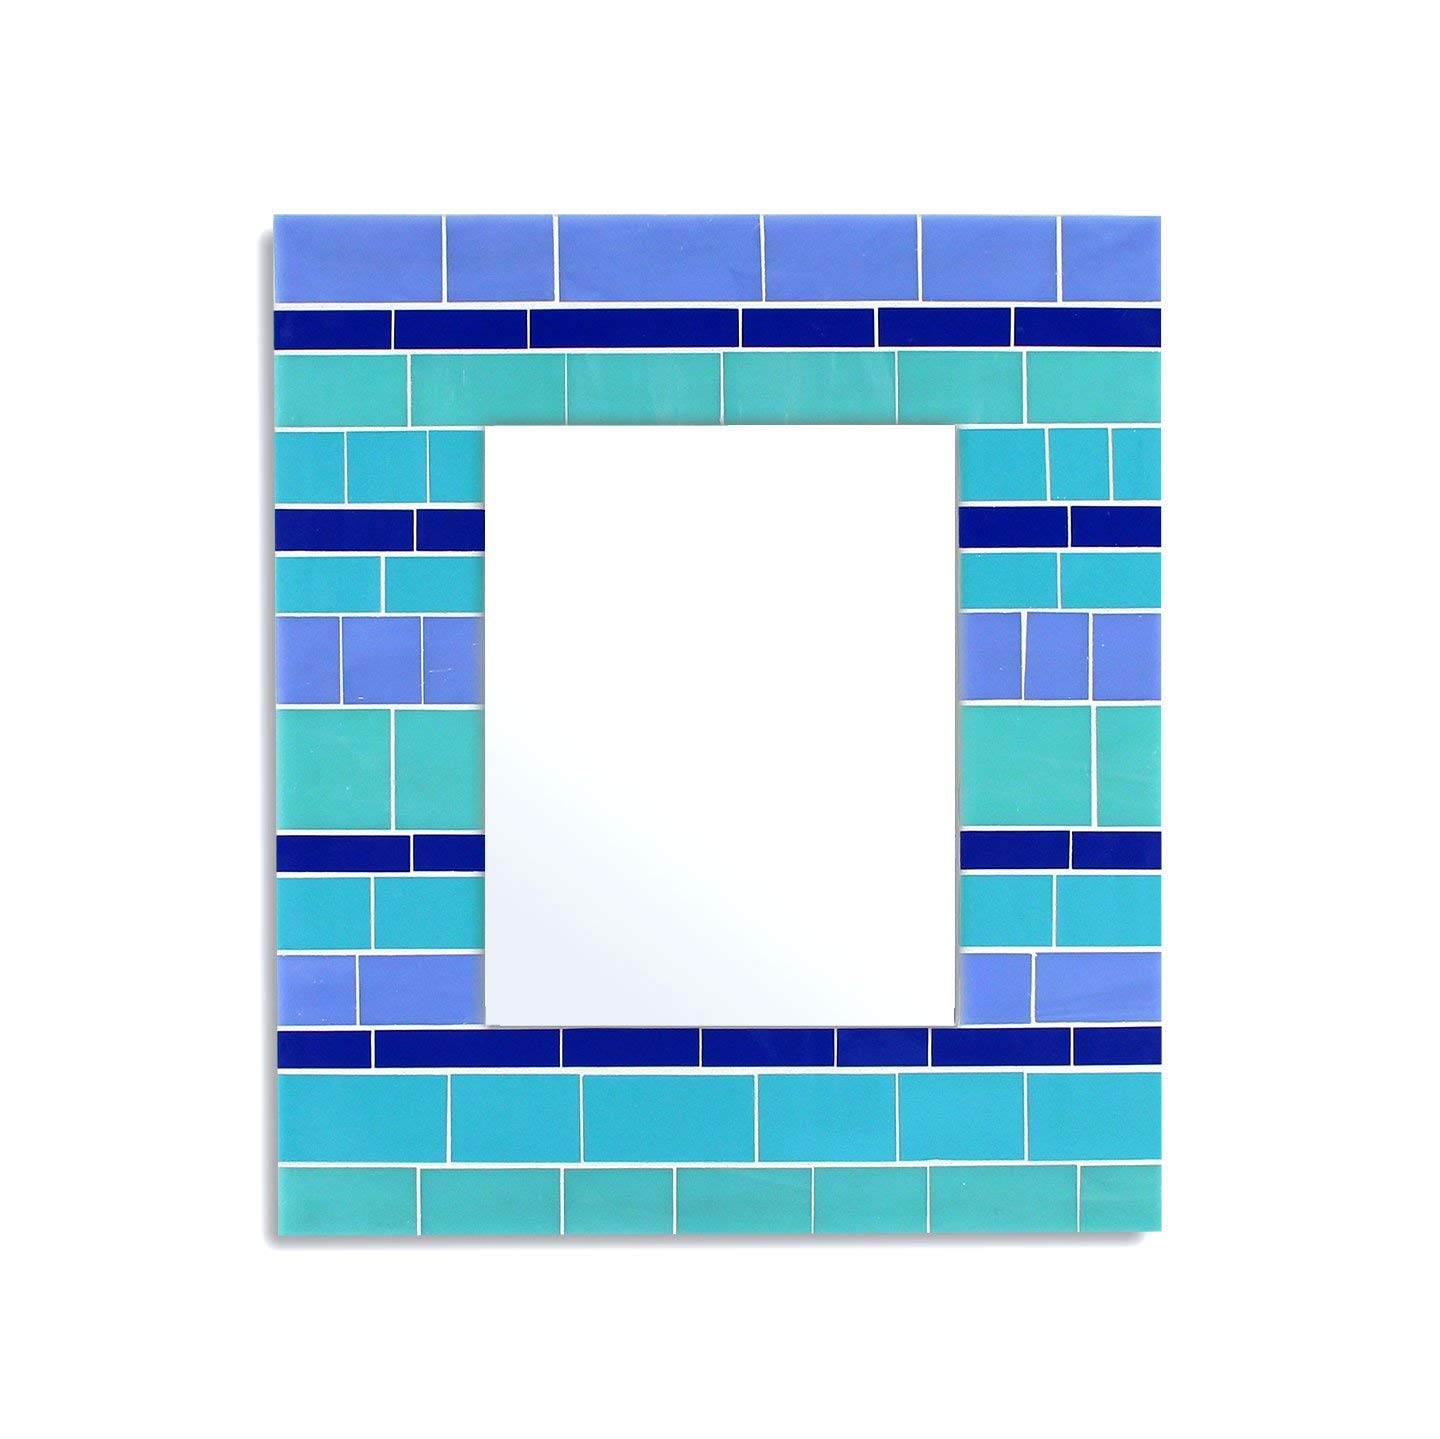 14x16 Glass Mosaic Wall Mirror in Blue, Teal, and Turquoise Stained Glass Tiles for Beach House